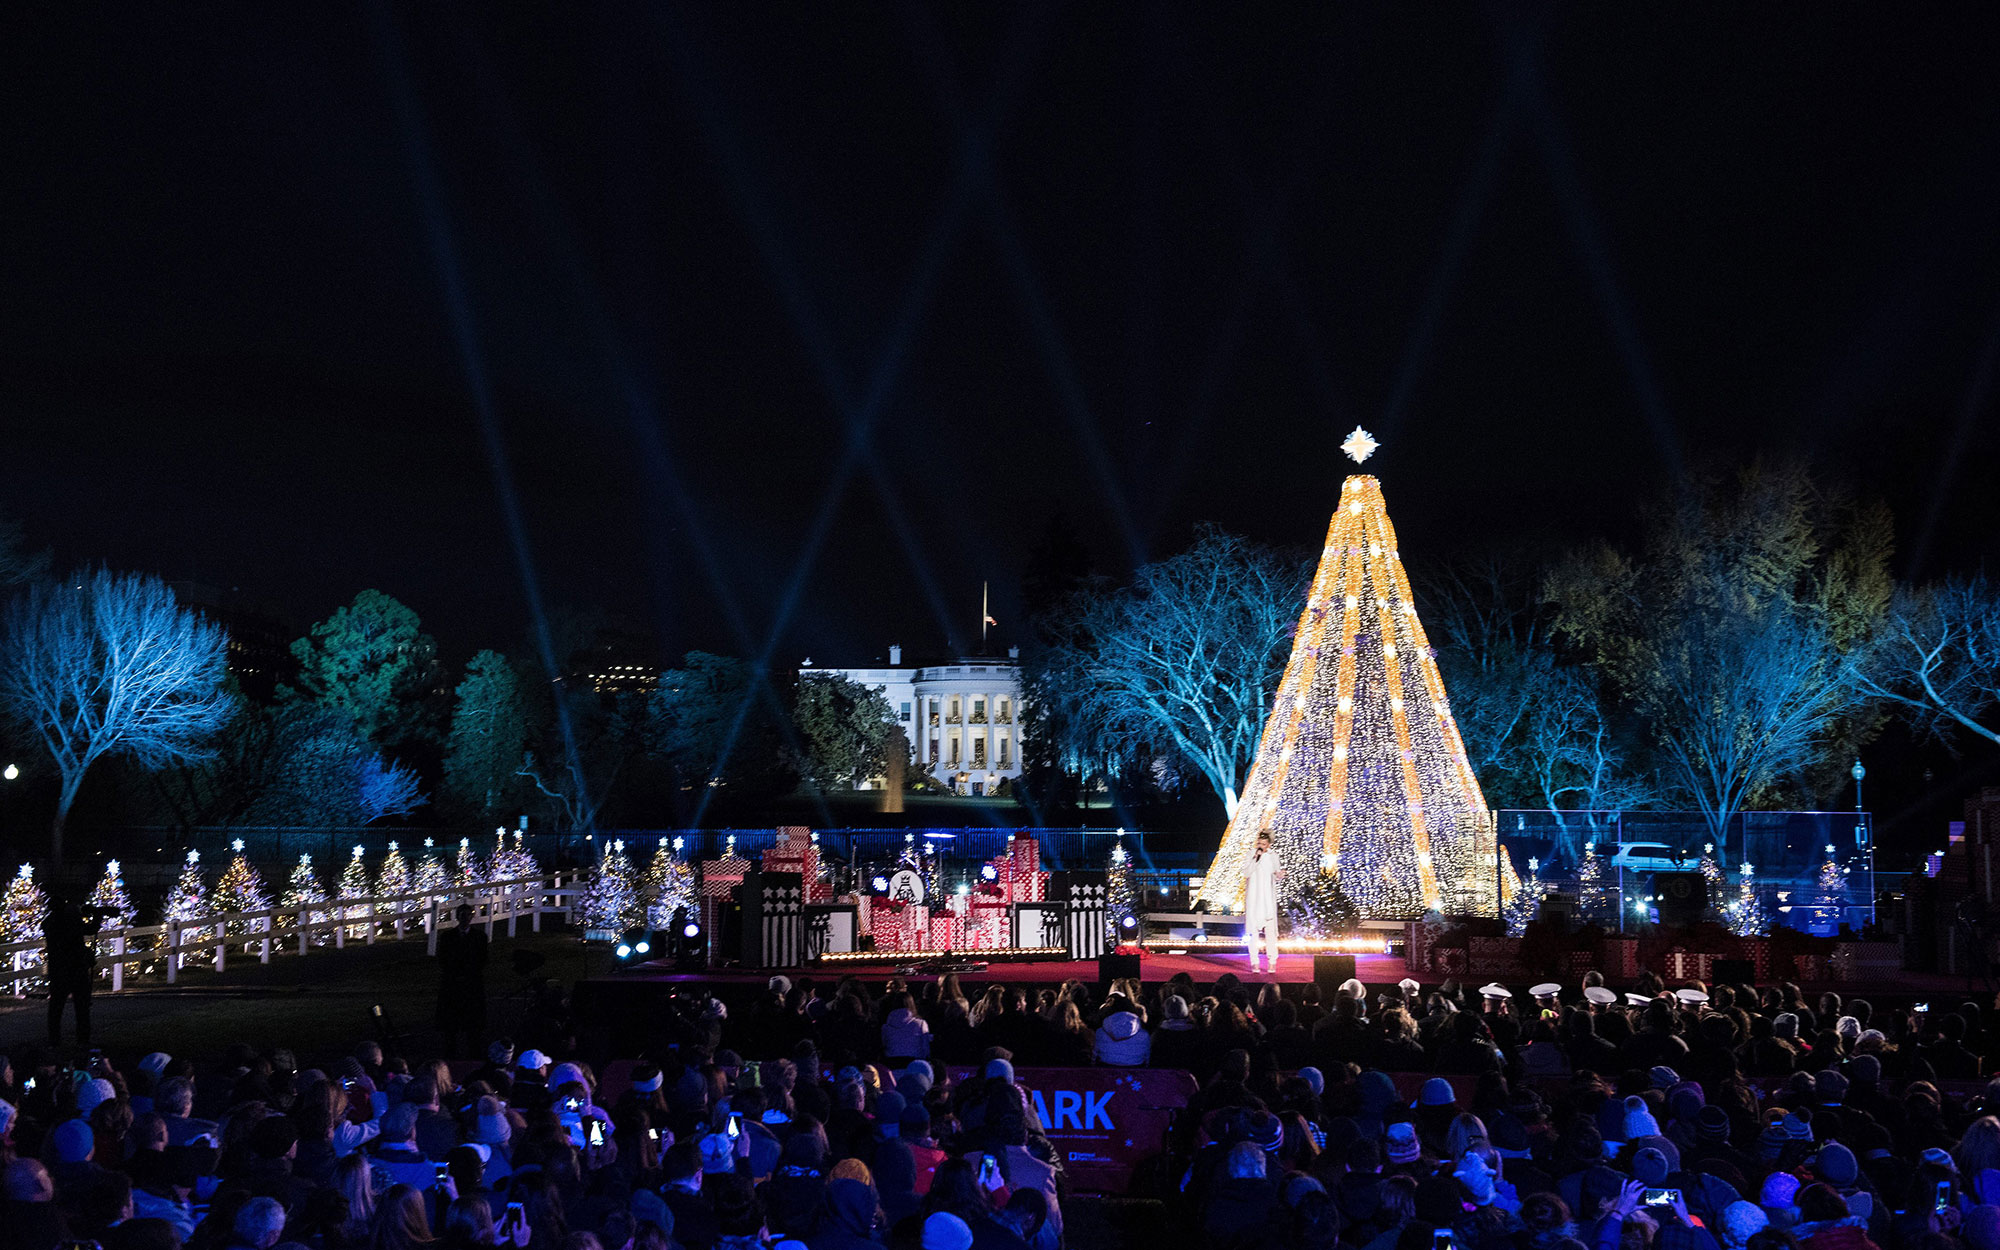 The National Christmas Tree is seen after its lighting on the Ellipse of the National Mall December 3, 2015 in Washington, DC. The First Family was joined by celebrities and guests to light the National Christmas tree during an evening of performances. AF